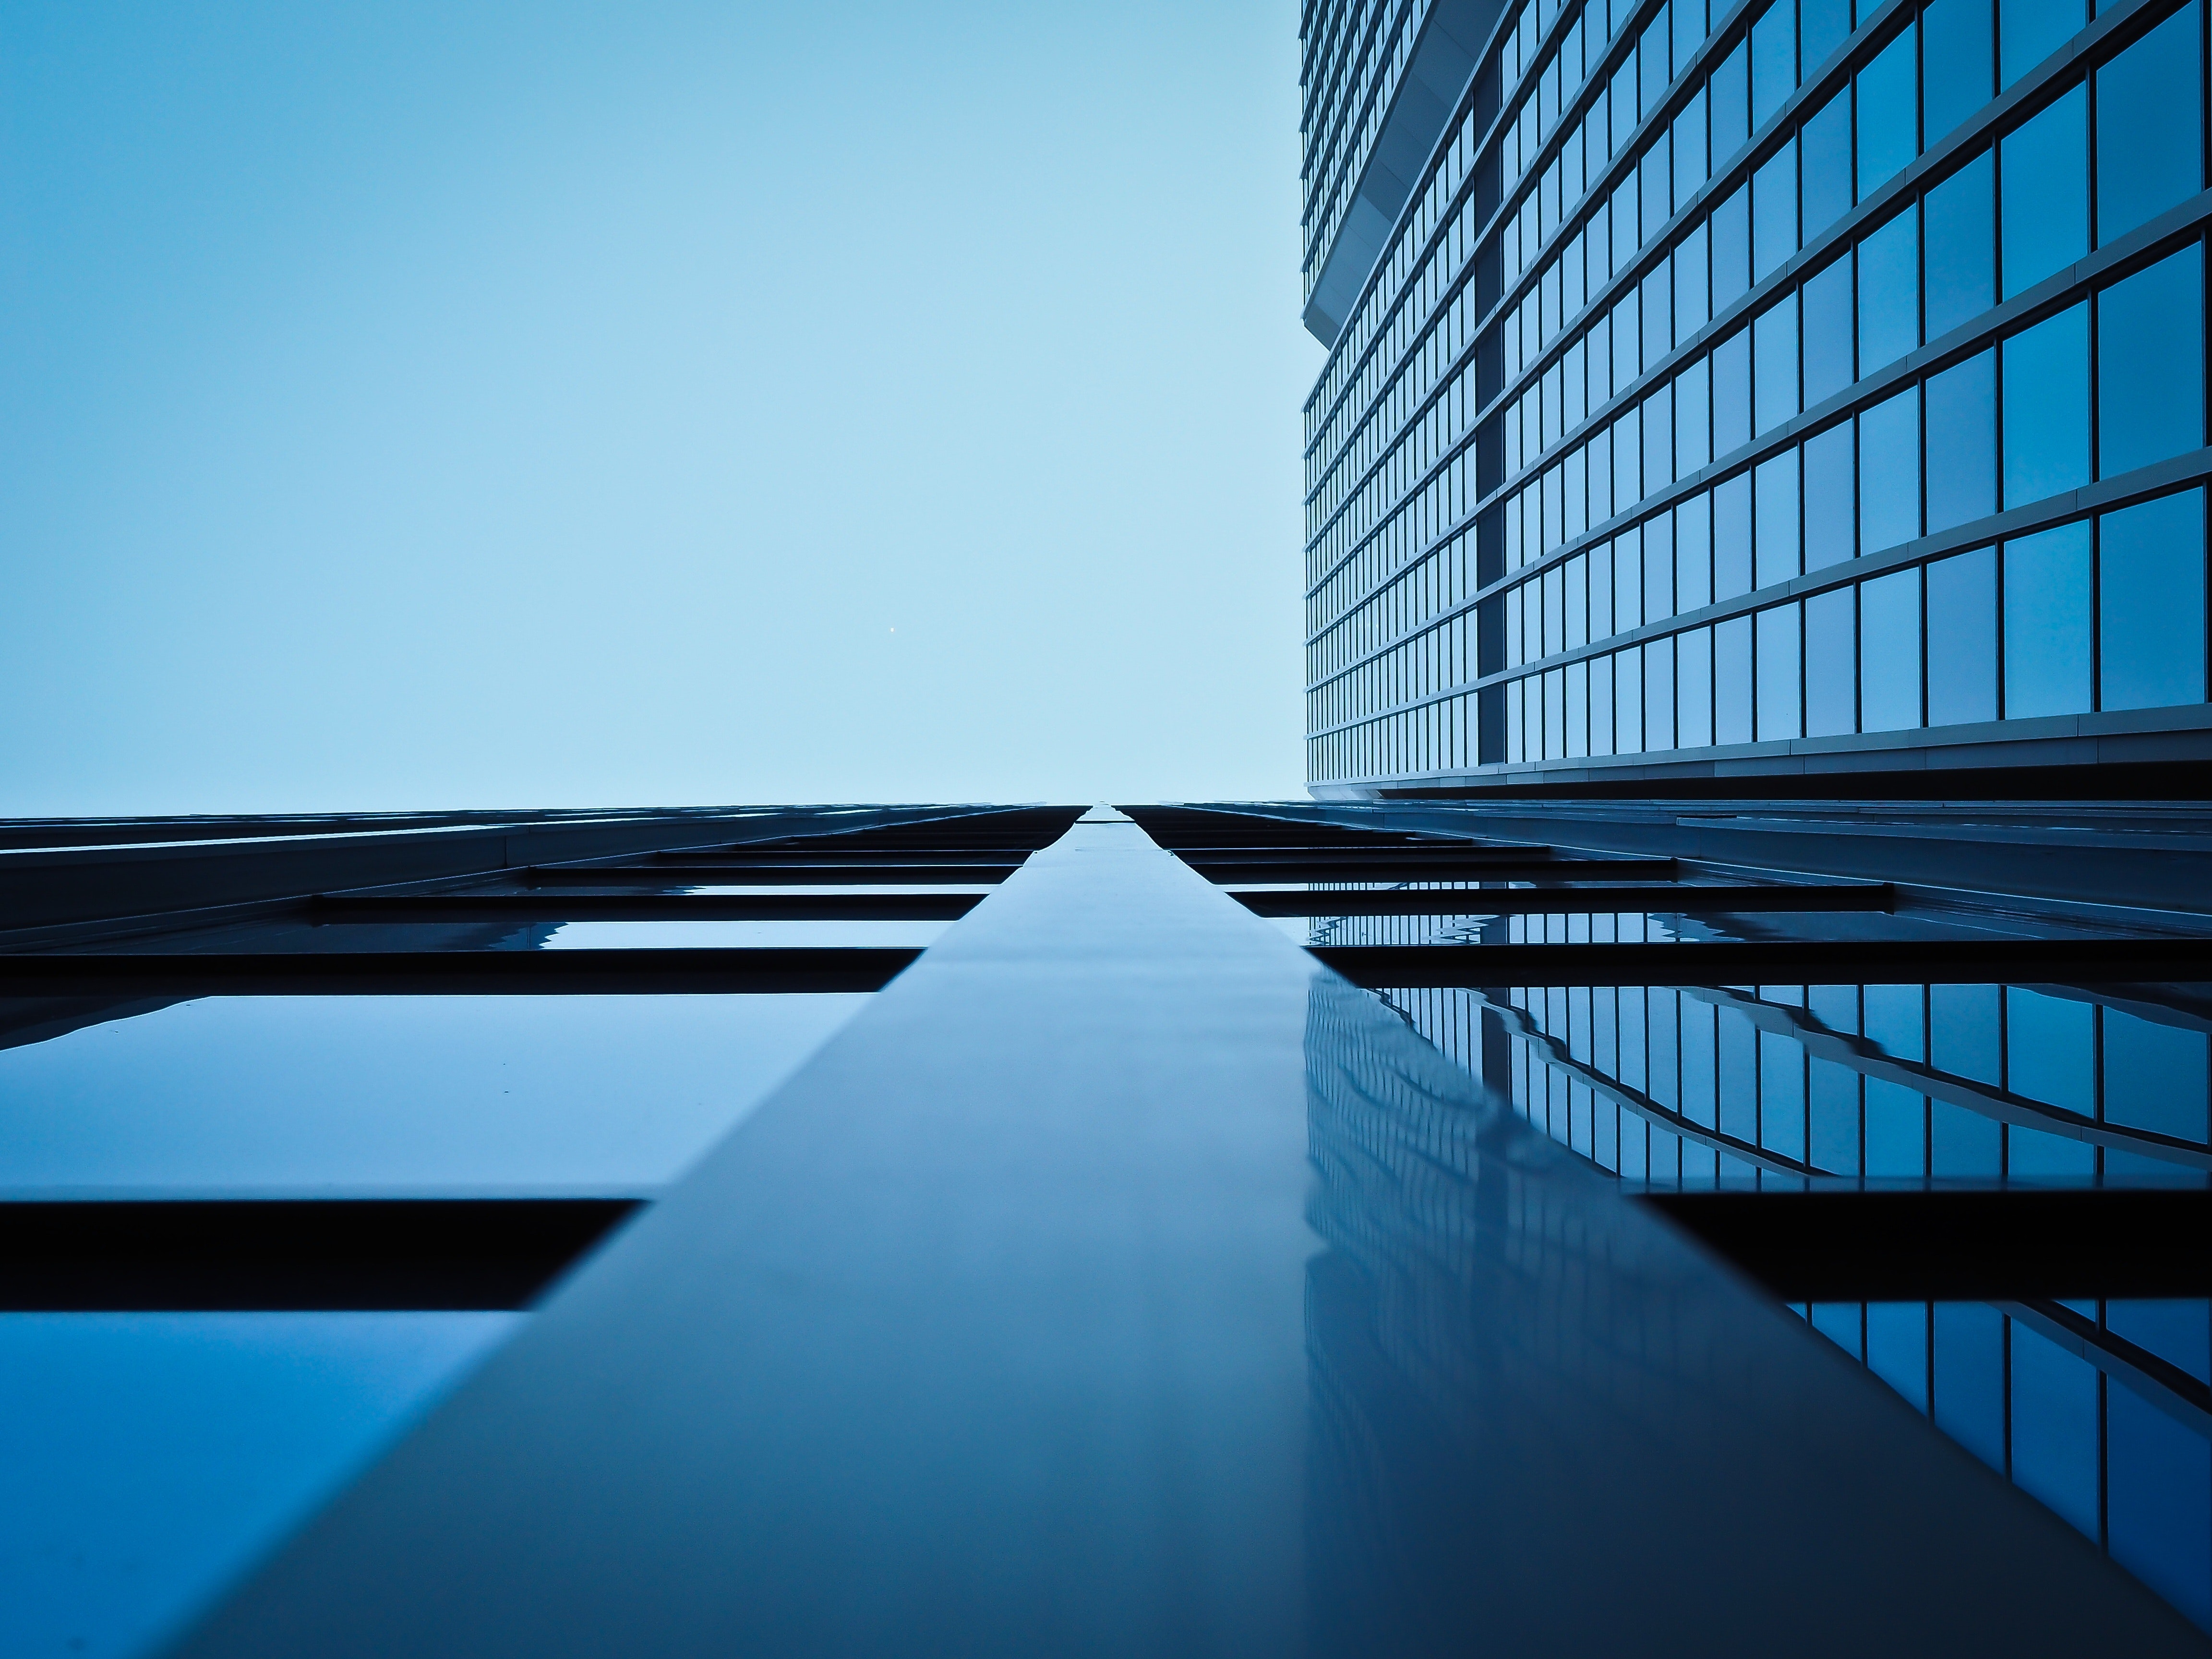 Low angle view of office building against clear sky photo